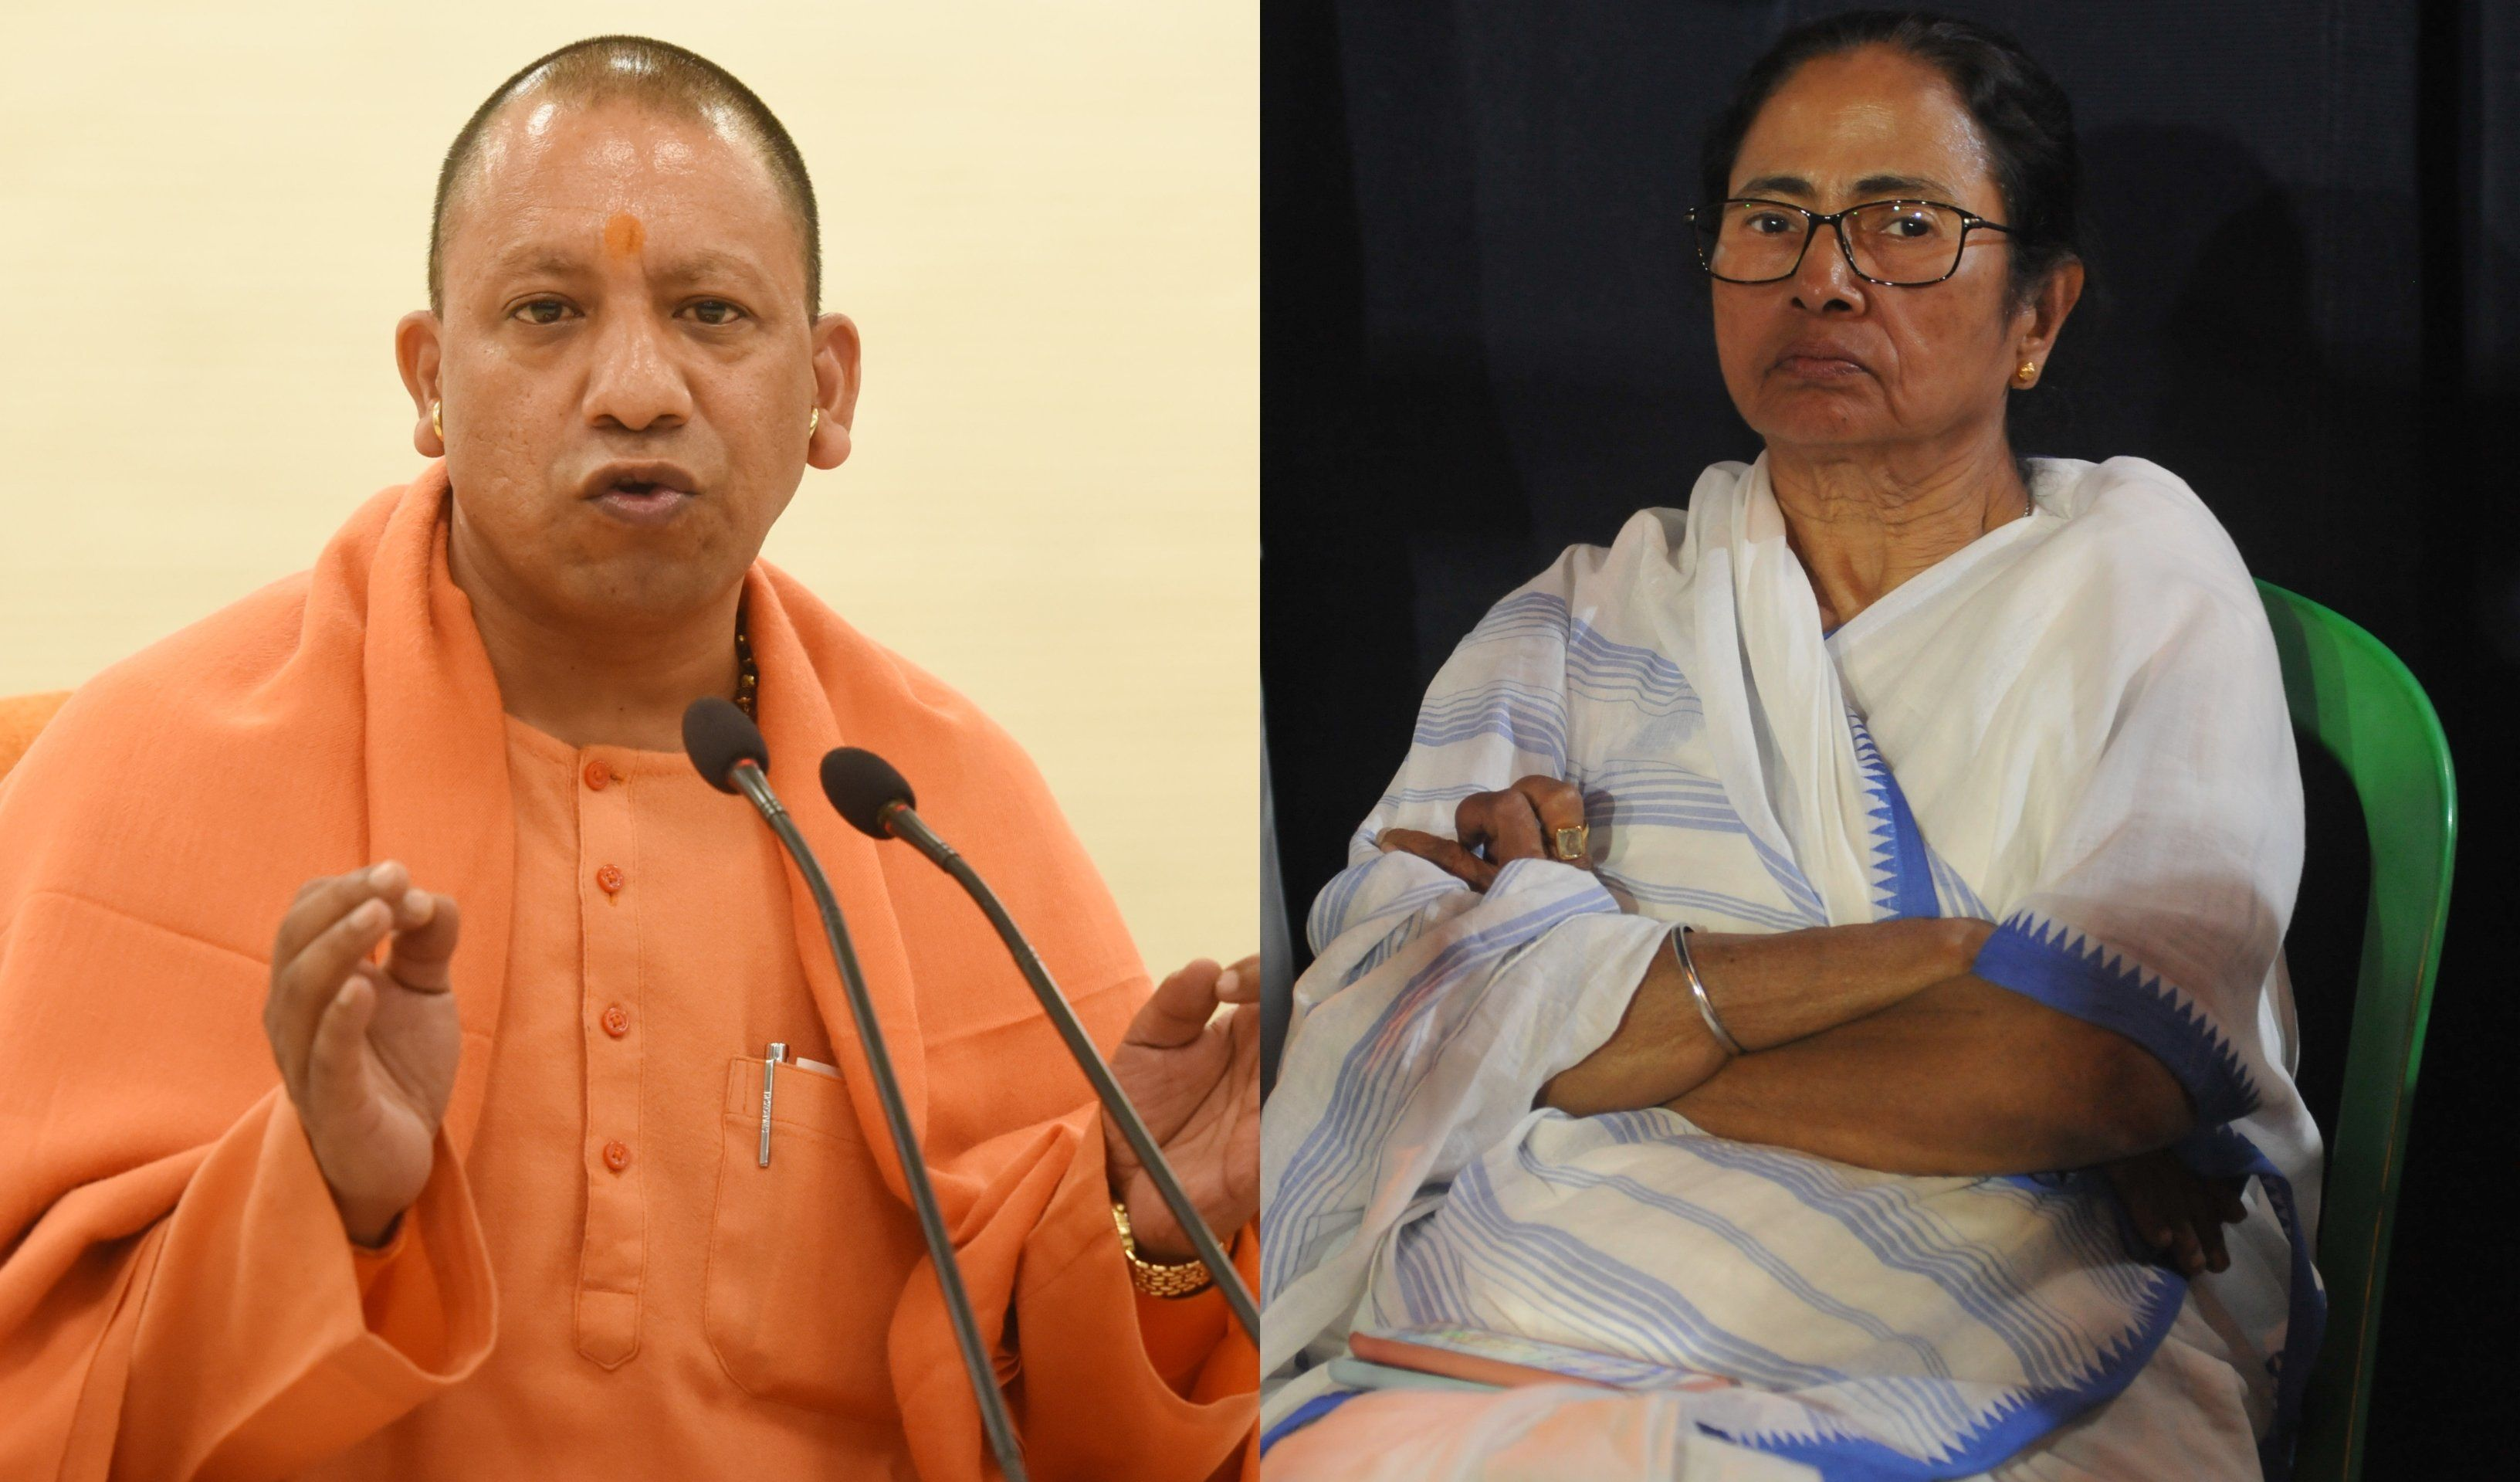 'Manage UP First': Mamata Banerjee To Yogi Adityanath; BJP Asks Her 'How's The